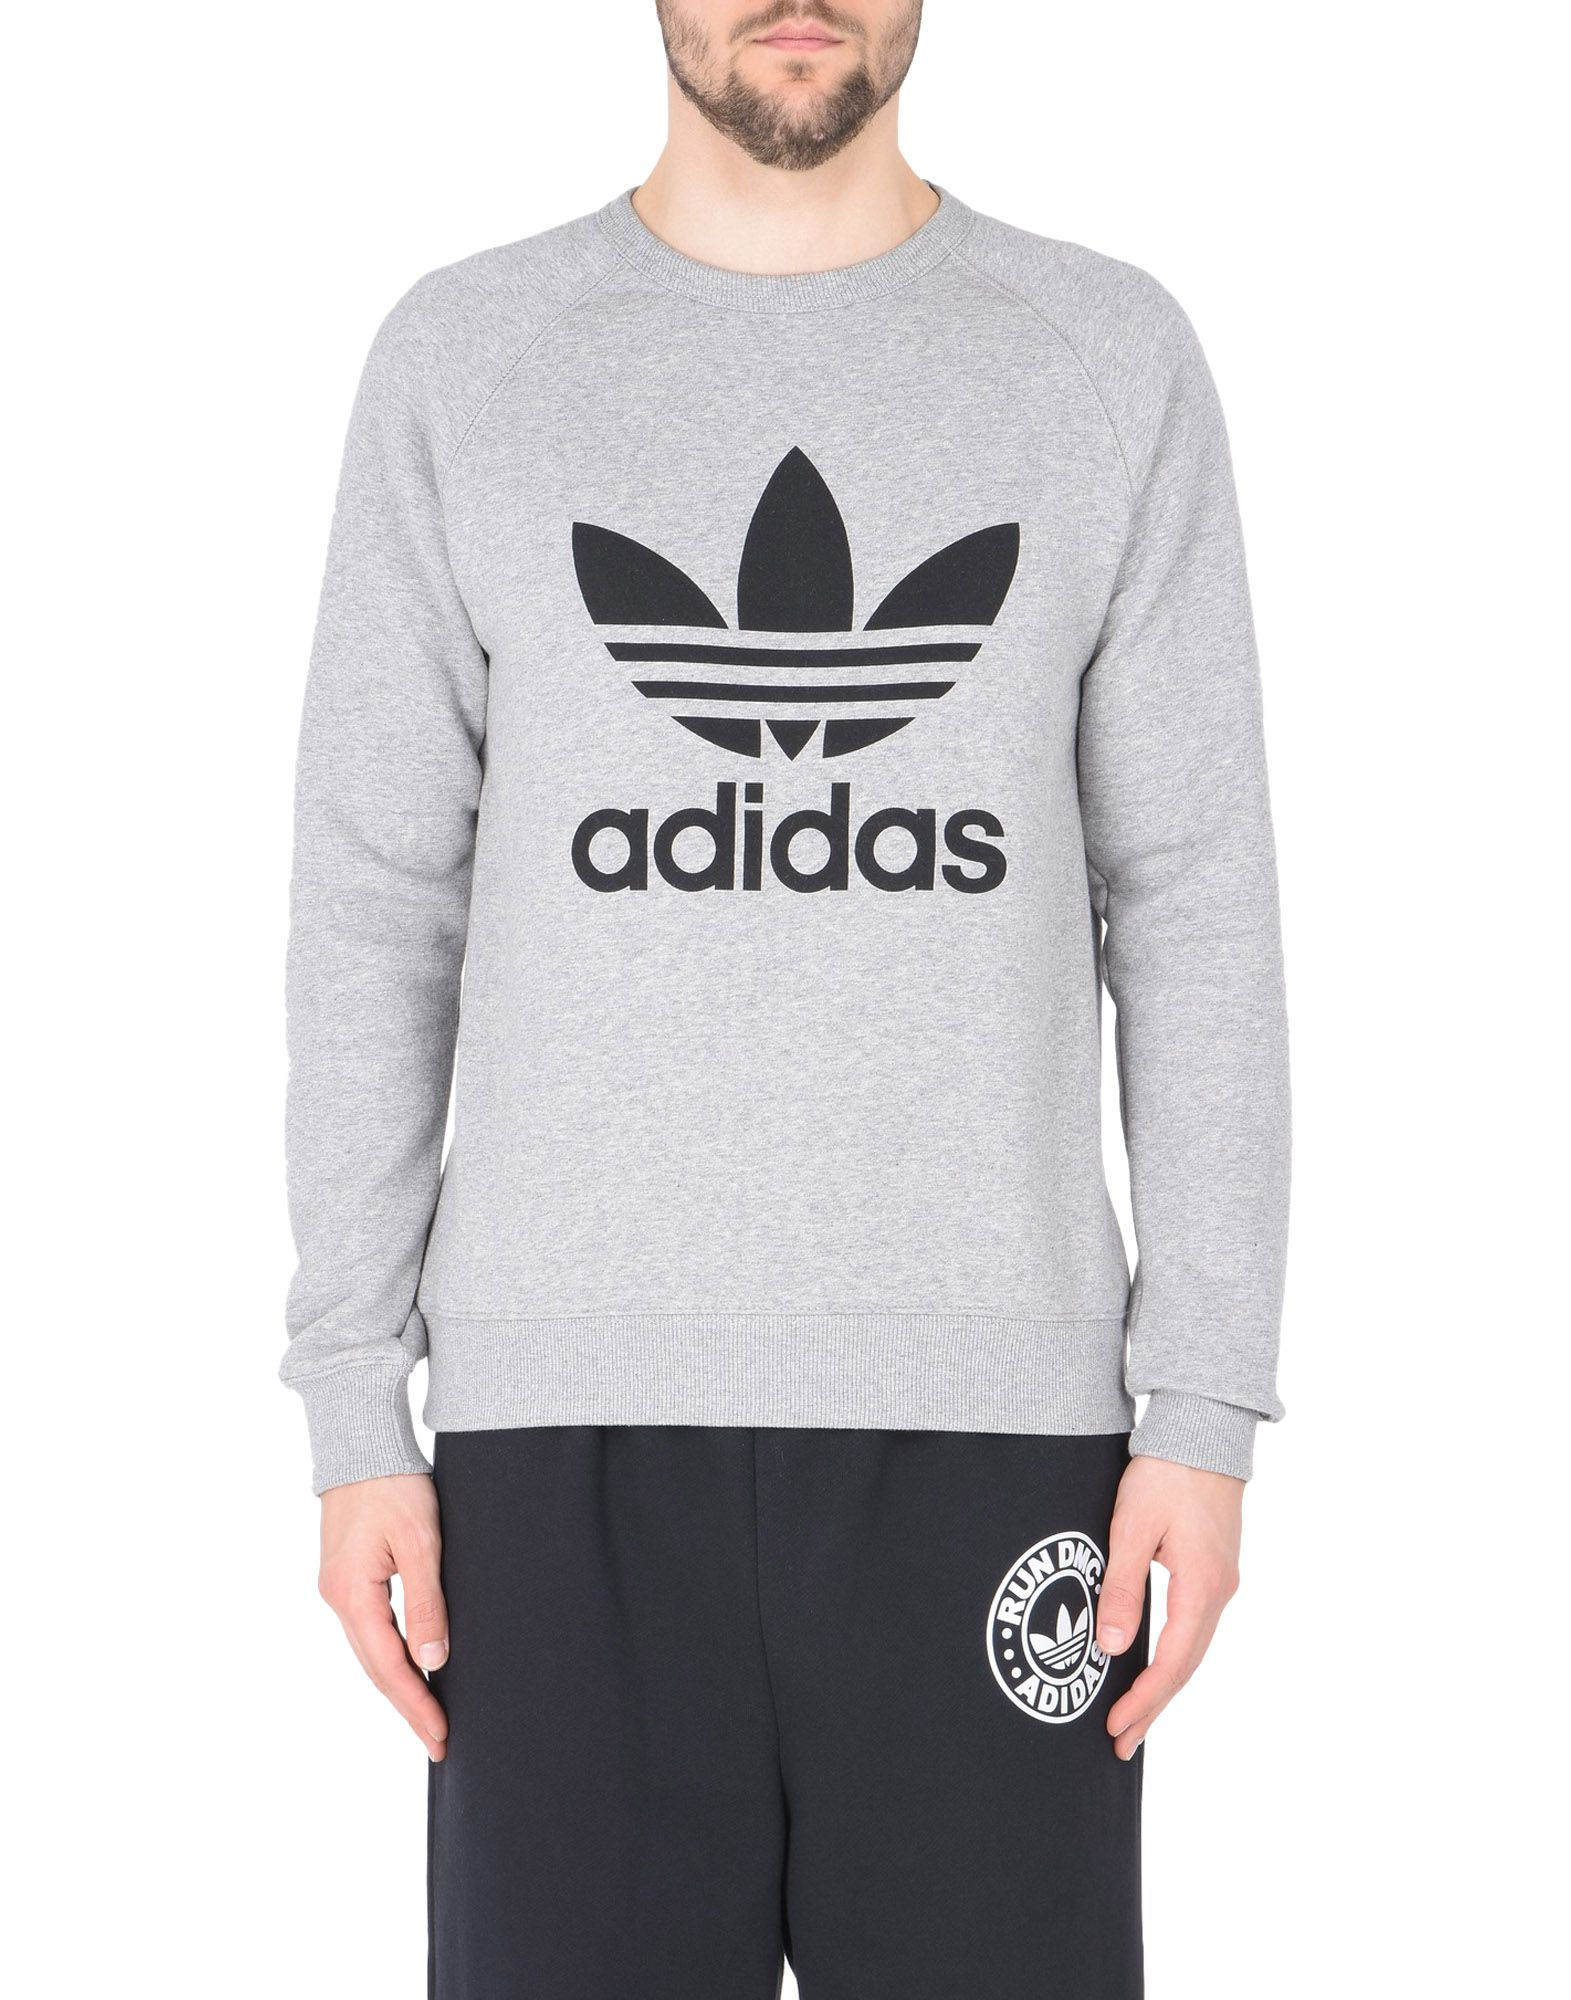 Adidas-Men-039-s-Trefoil-Logo-Graphic-Raglan-Sleeve-Sweatshirt thumbnail 6